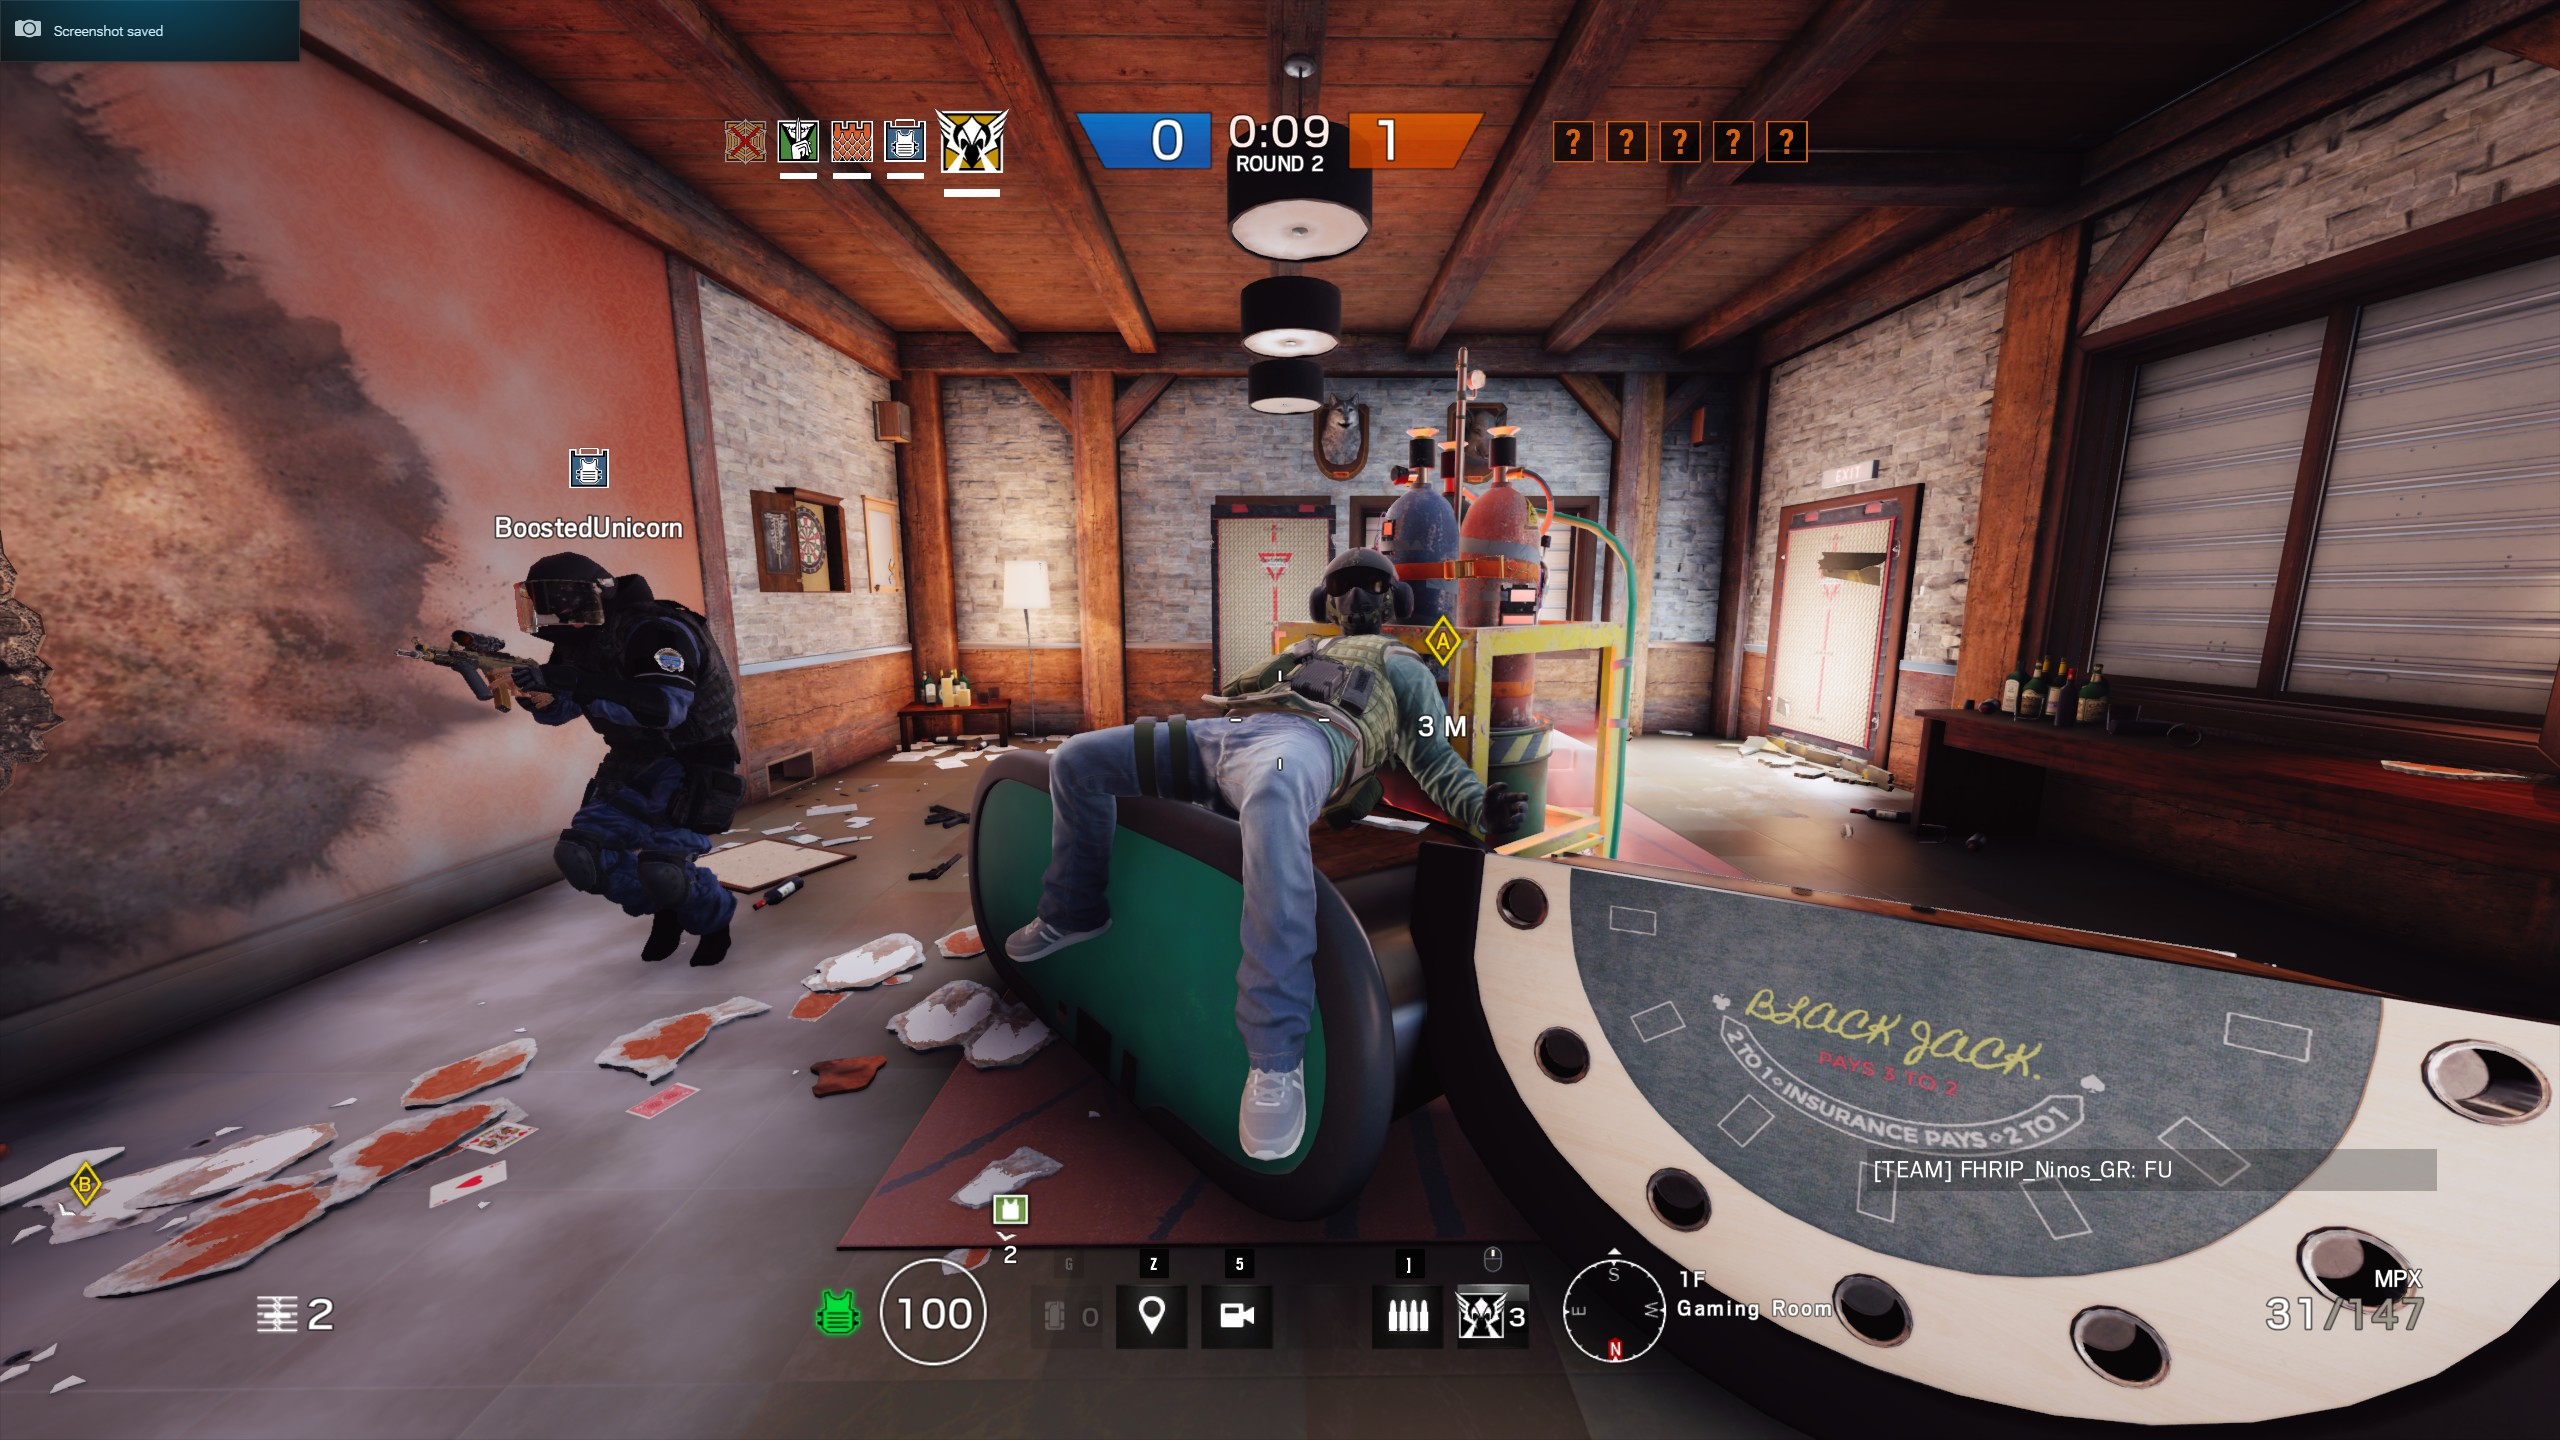 Siege Relax Jager Chilling Out Maxing And Relaxing All Cool Rainbow6